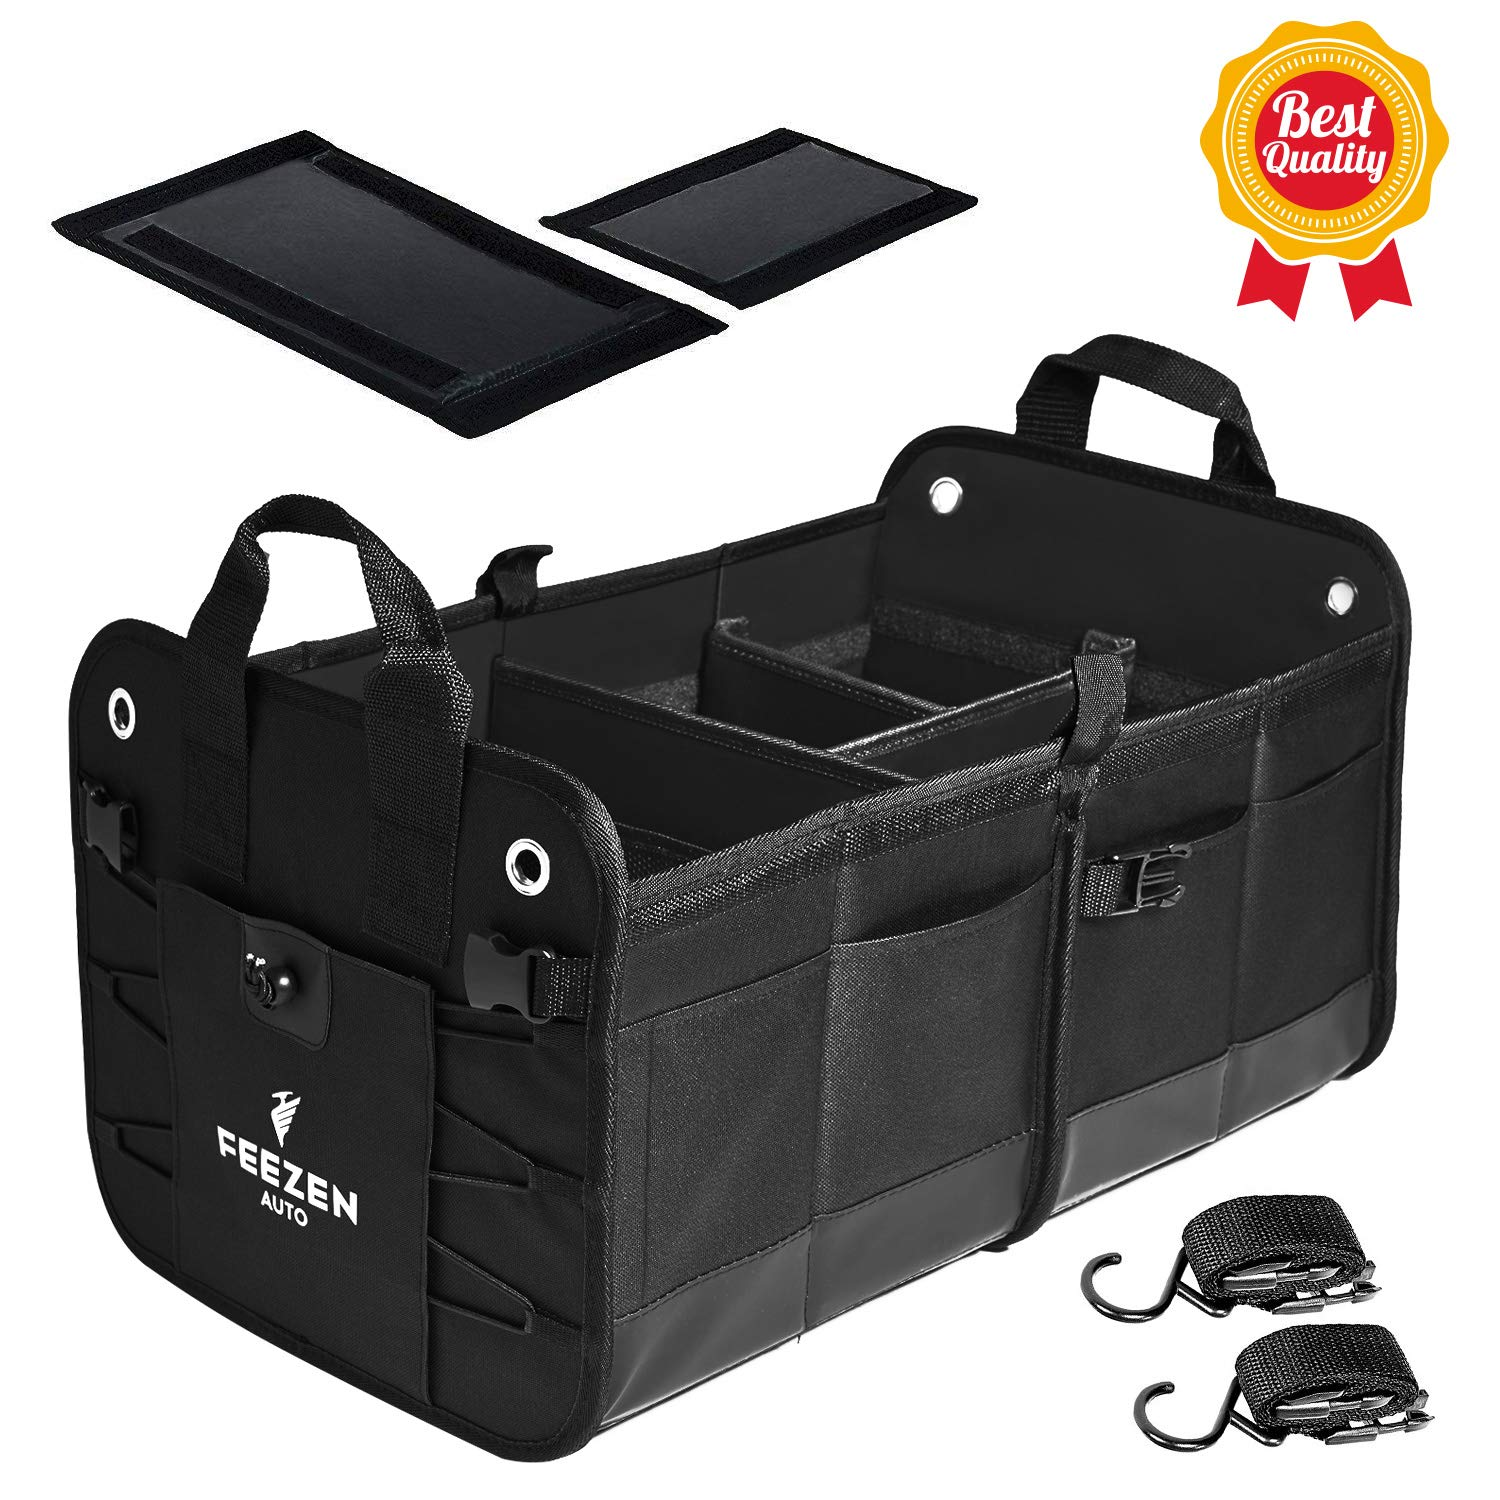 Feezen Car Trunk Organizer for SUV, Truck, Auto. Durable Collapsible Cargo Storage. With Extremely Strong Non-Slip Bottom Strips & Black Straps to Prevent Sliding. Waterproof Bottom, Durable Materials by Feezen